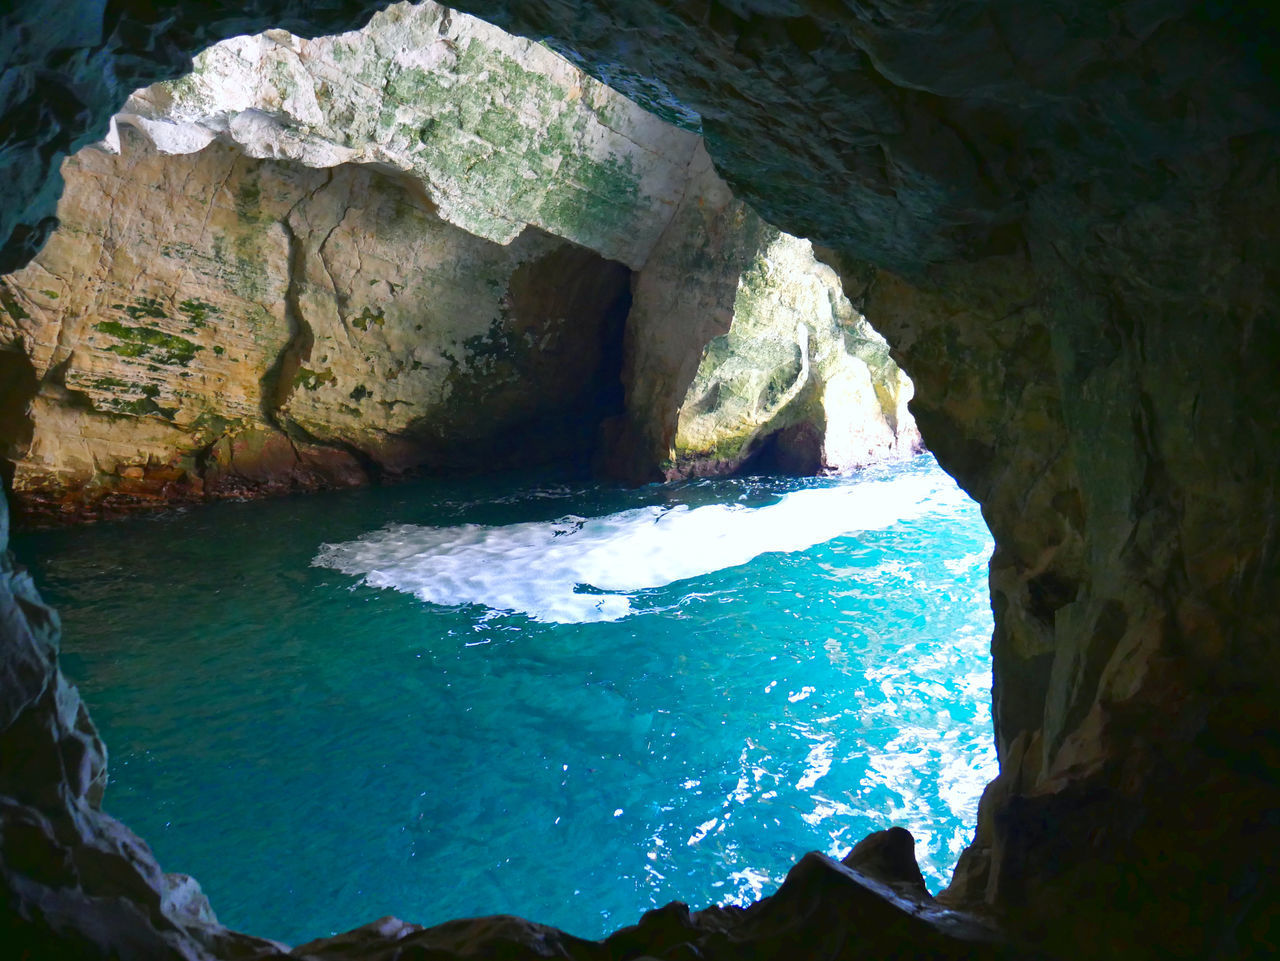 water, rock, rock - object, solid, nature, rock formation, sea, no people, beauty in nature, day, cave, outdoors, scenics - nature, waterfront, geology, physical geography, tranquility, tranquil scene, motion, turquoise colored, eroded, flowing water